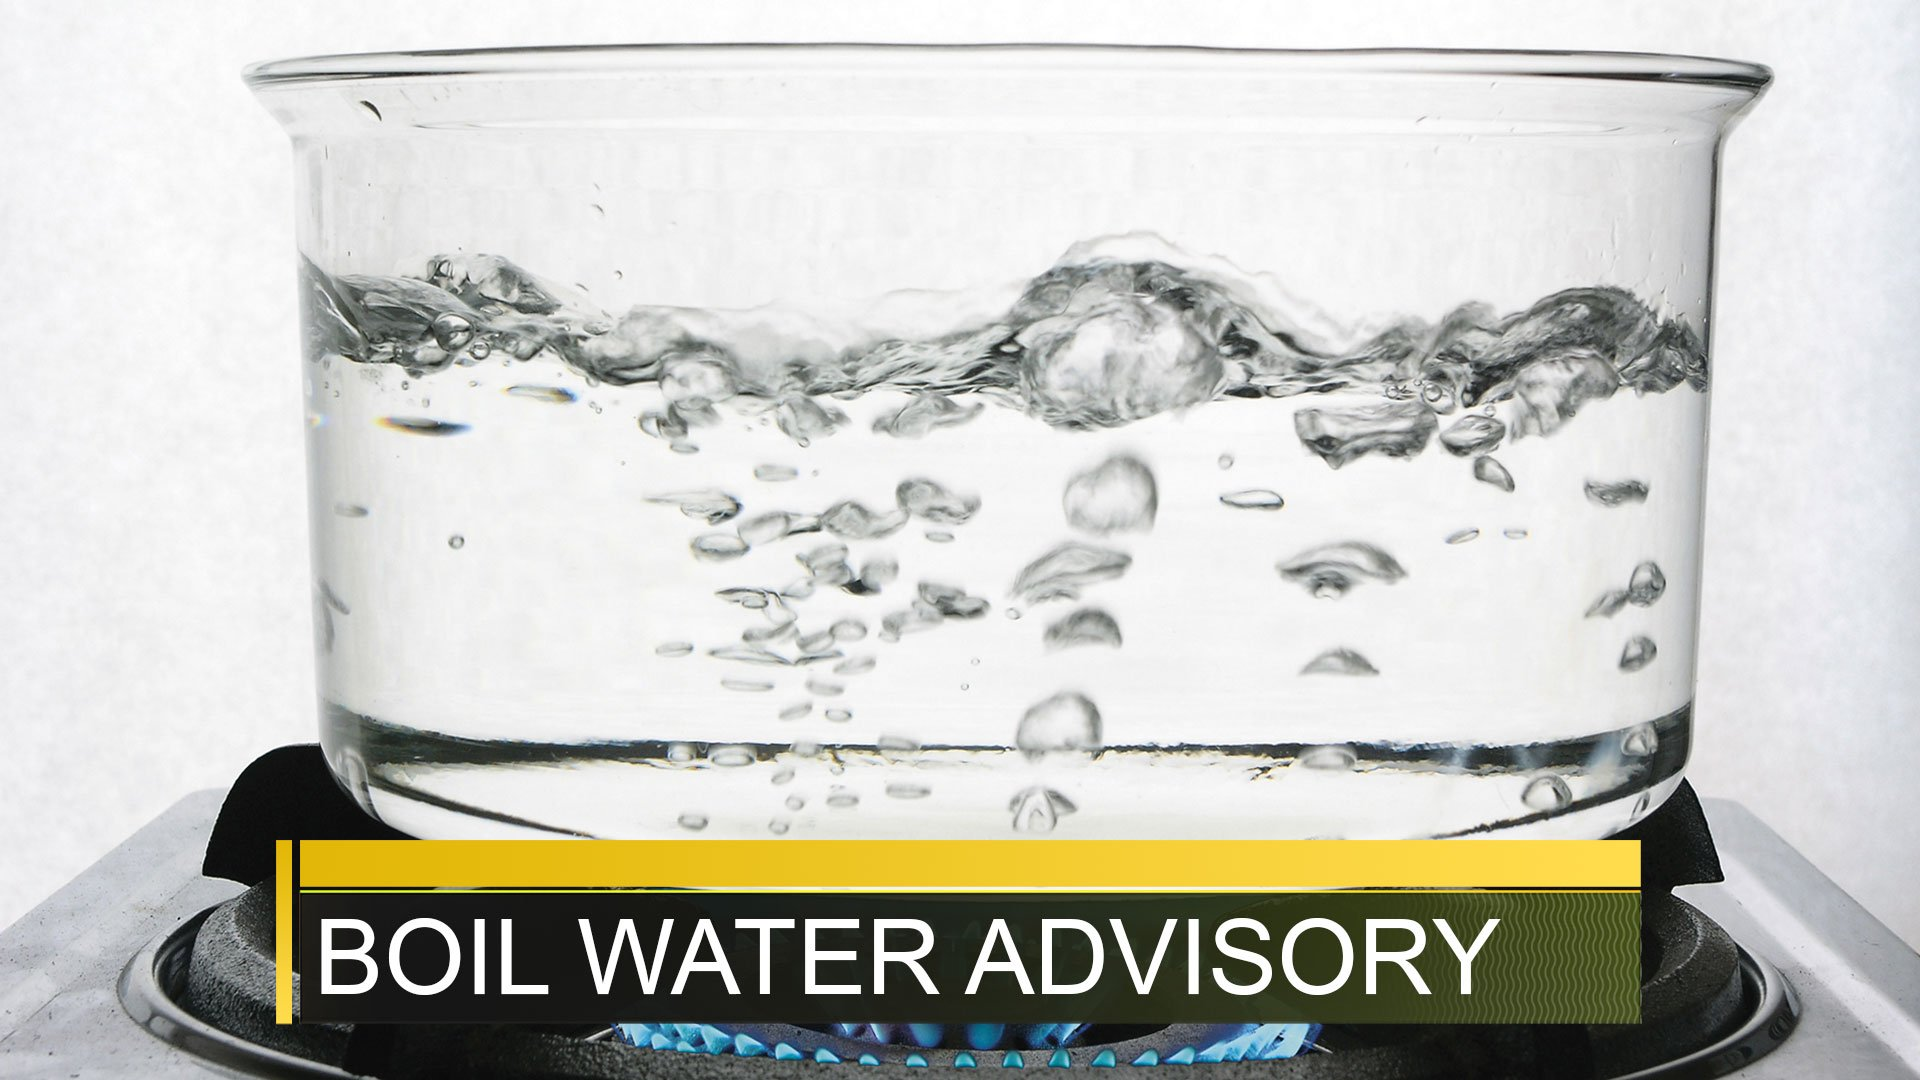 Boil Water Advisory; Source: WFXG